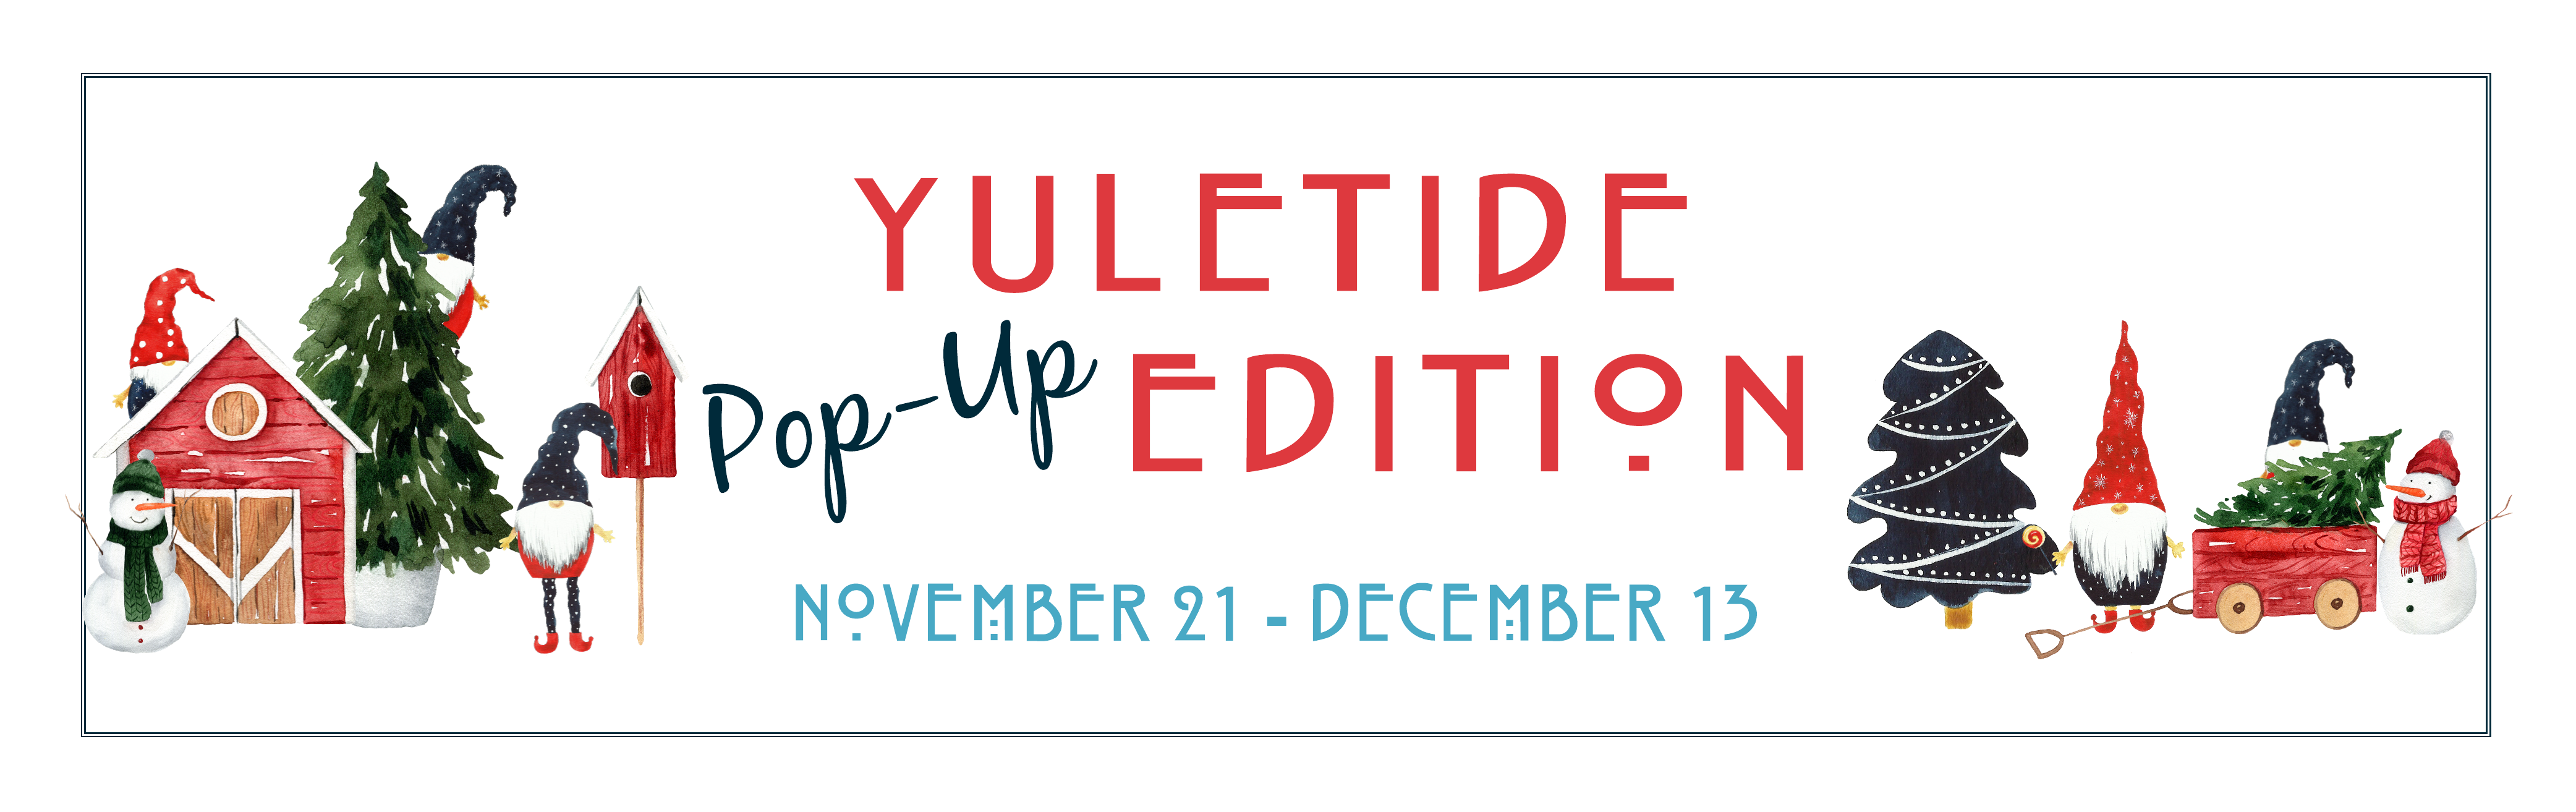 Yuletide Pop-Up Edition